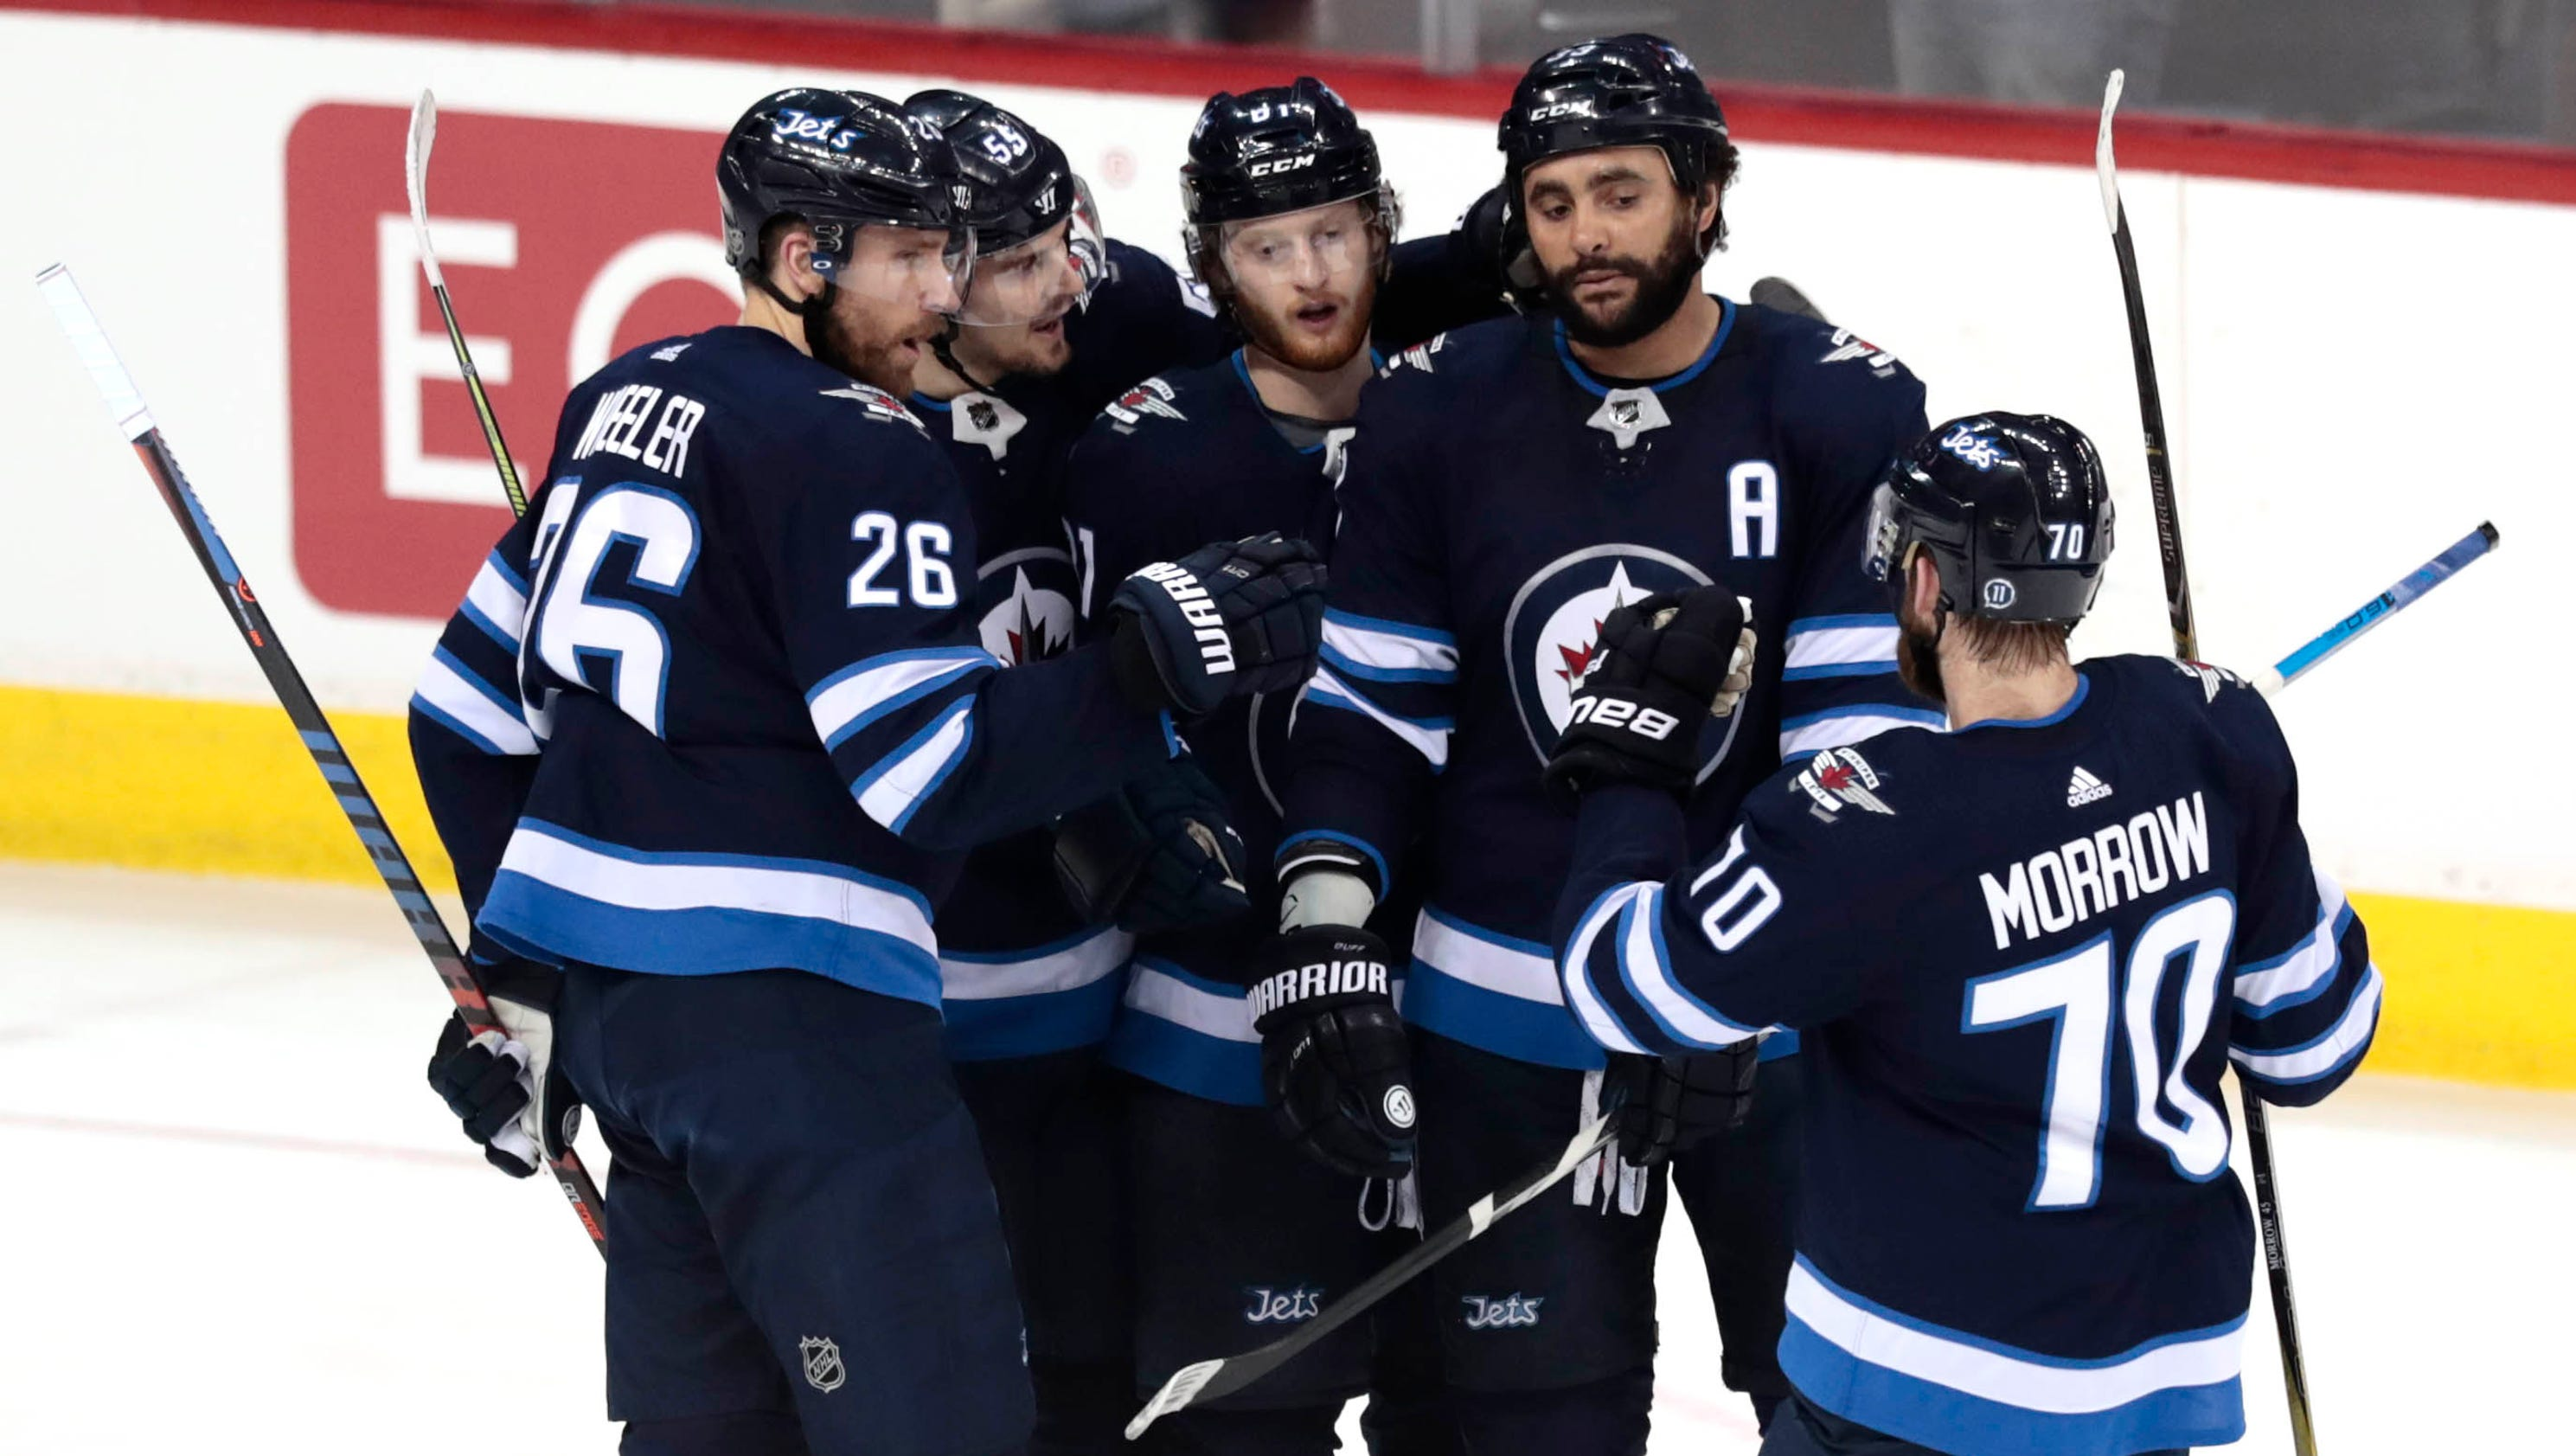 636588754941375120-usp-nhl--calgary-flames-at-winnipeg-jets